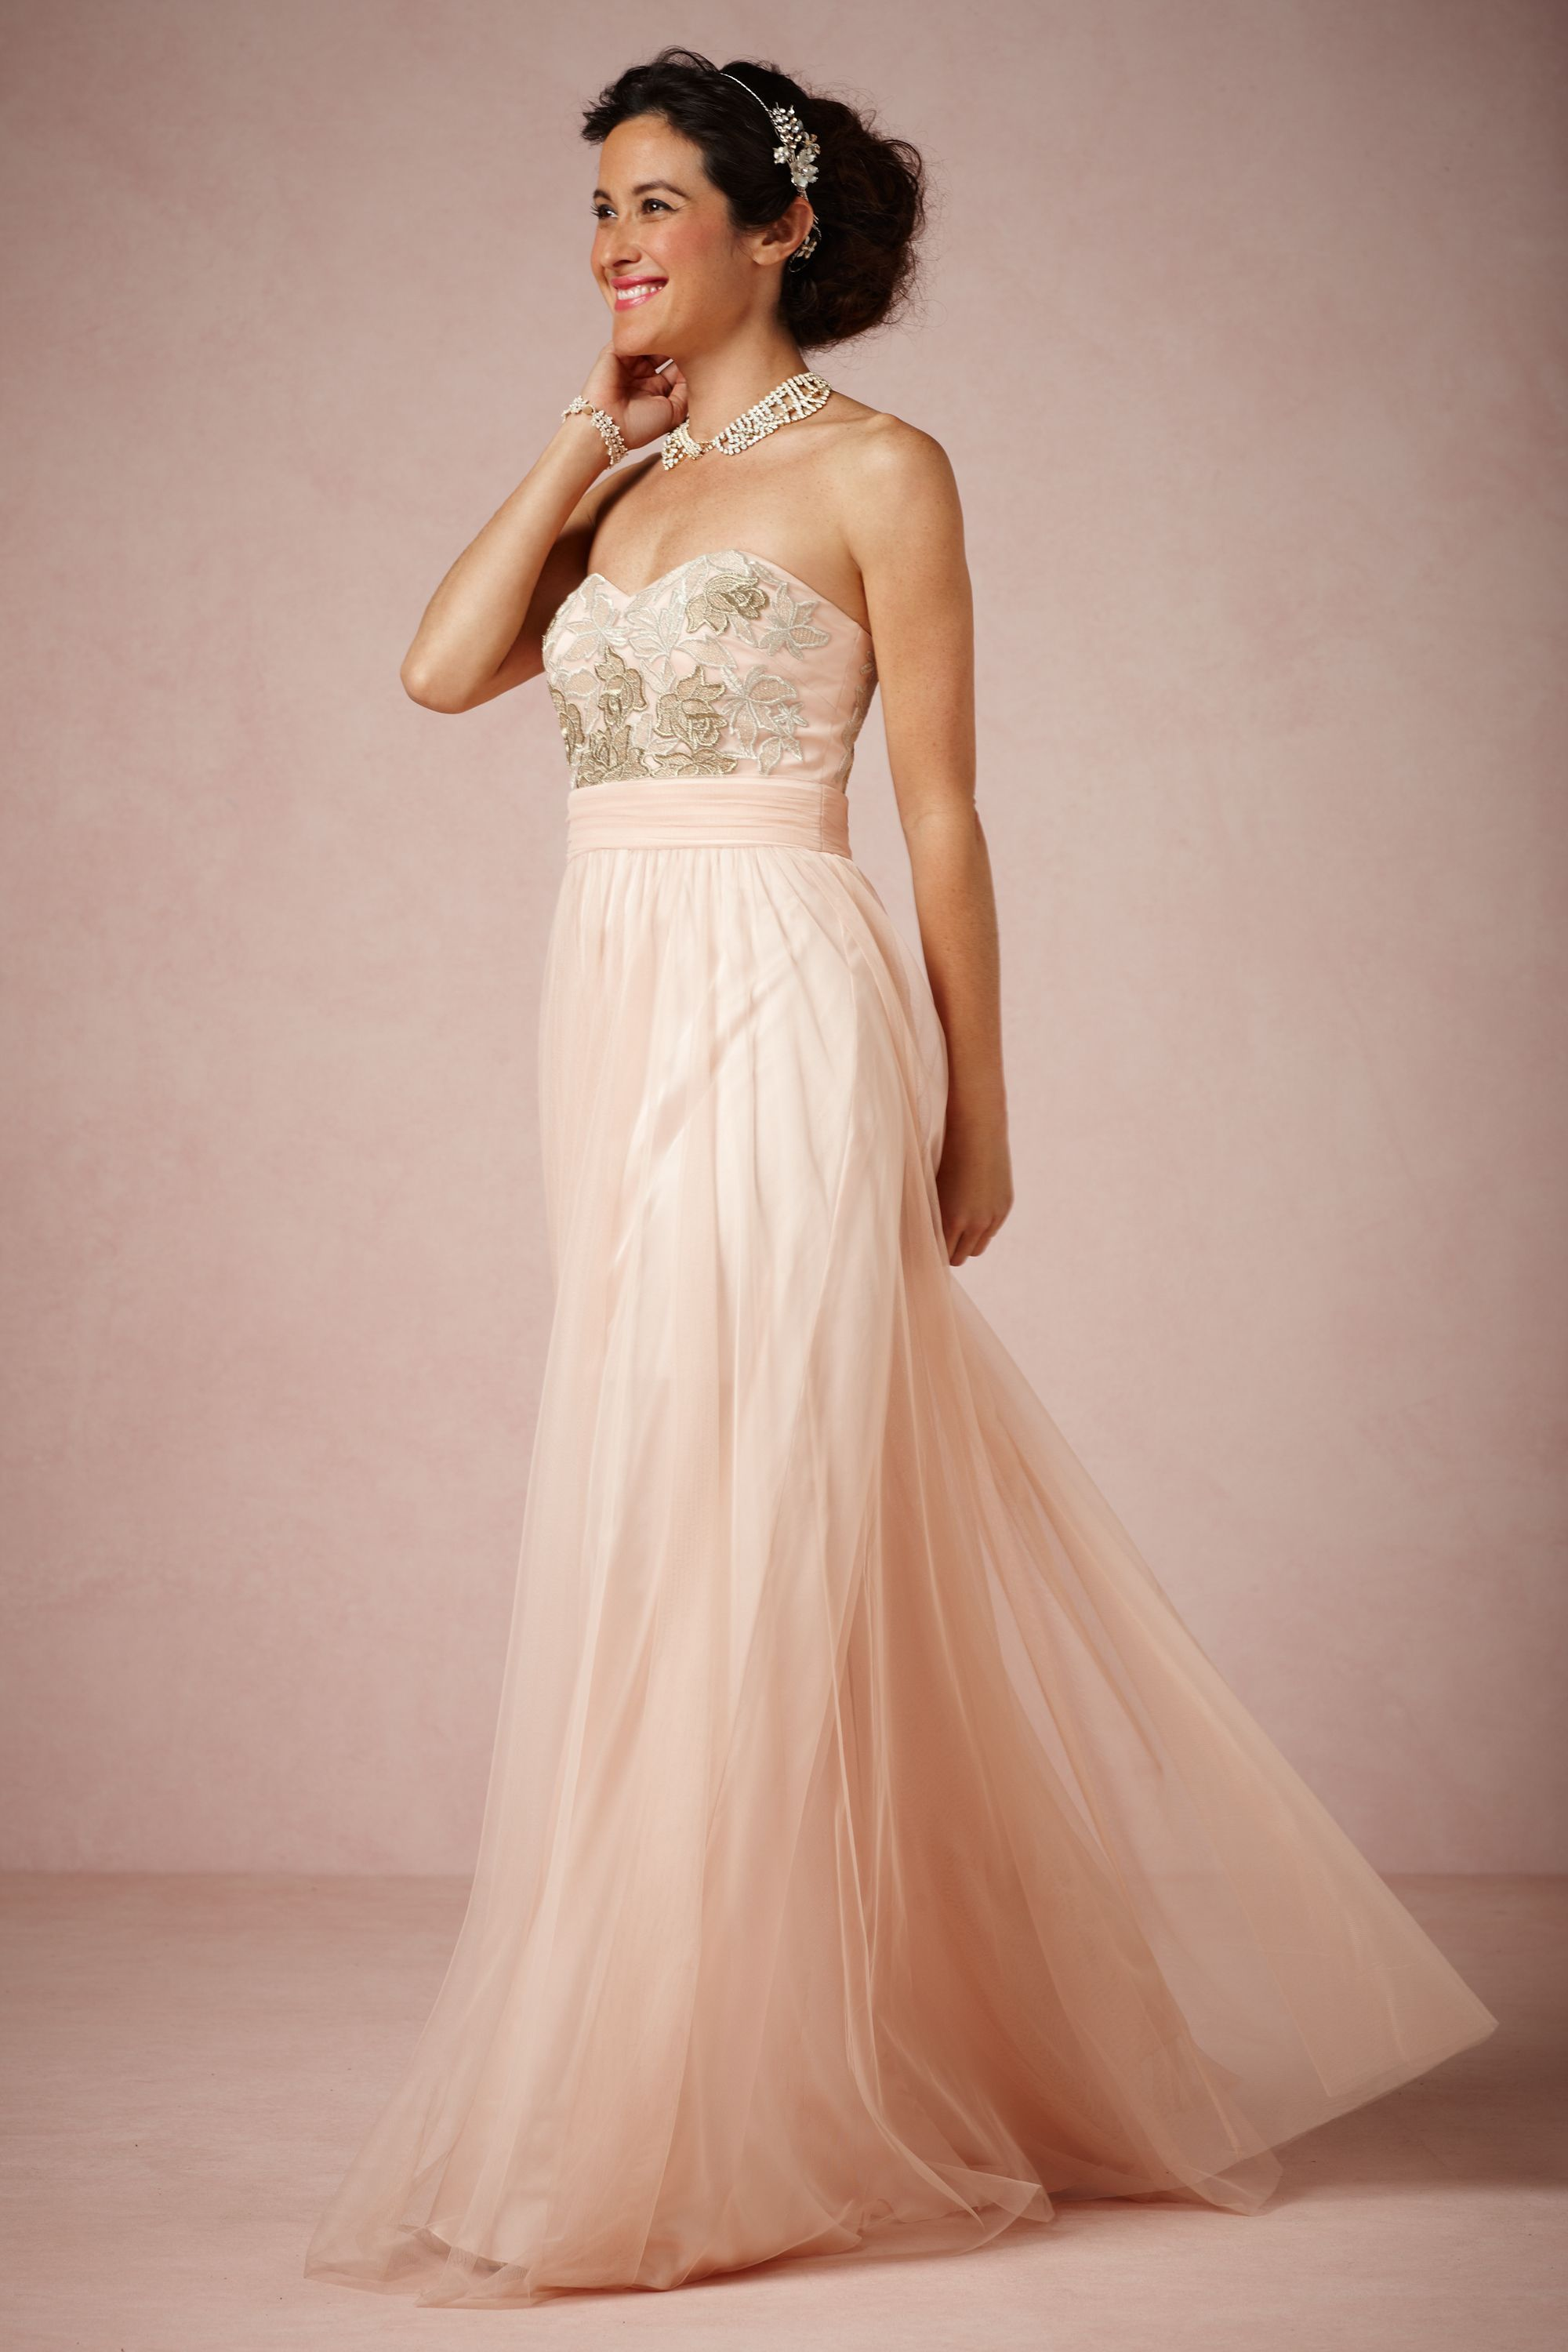 20 Unconventional Wedding Dresses for the Modern Bride | Mis sueños ...